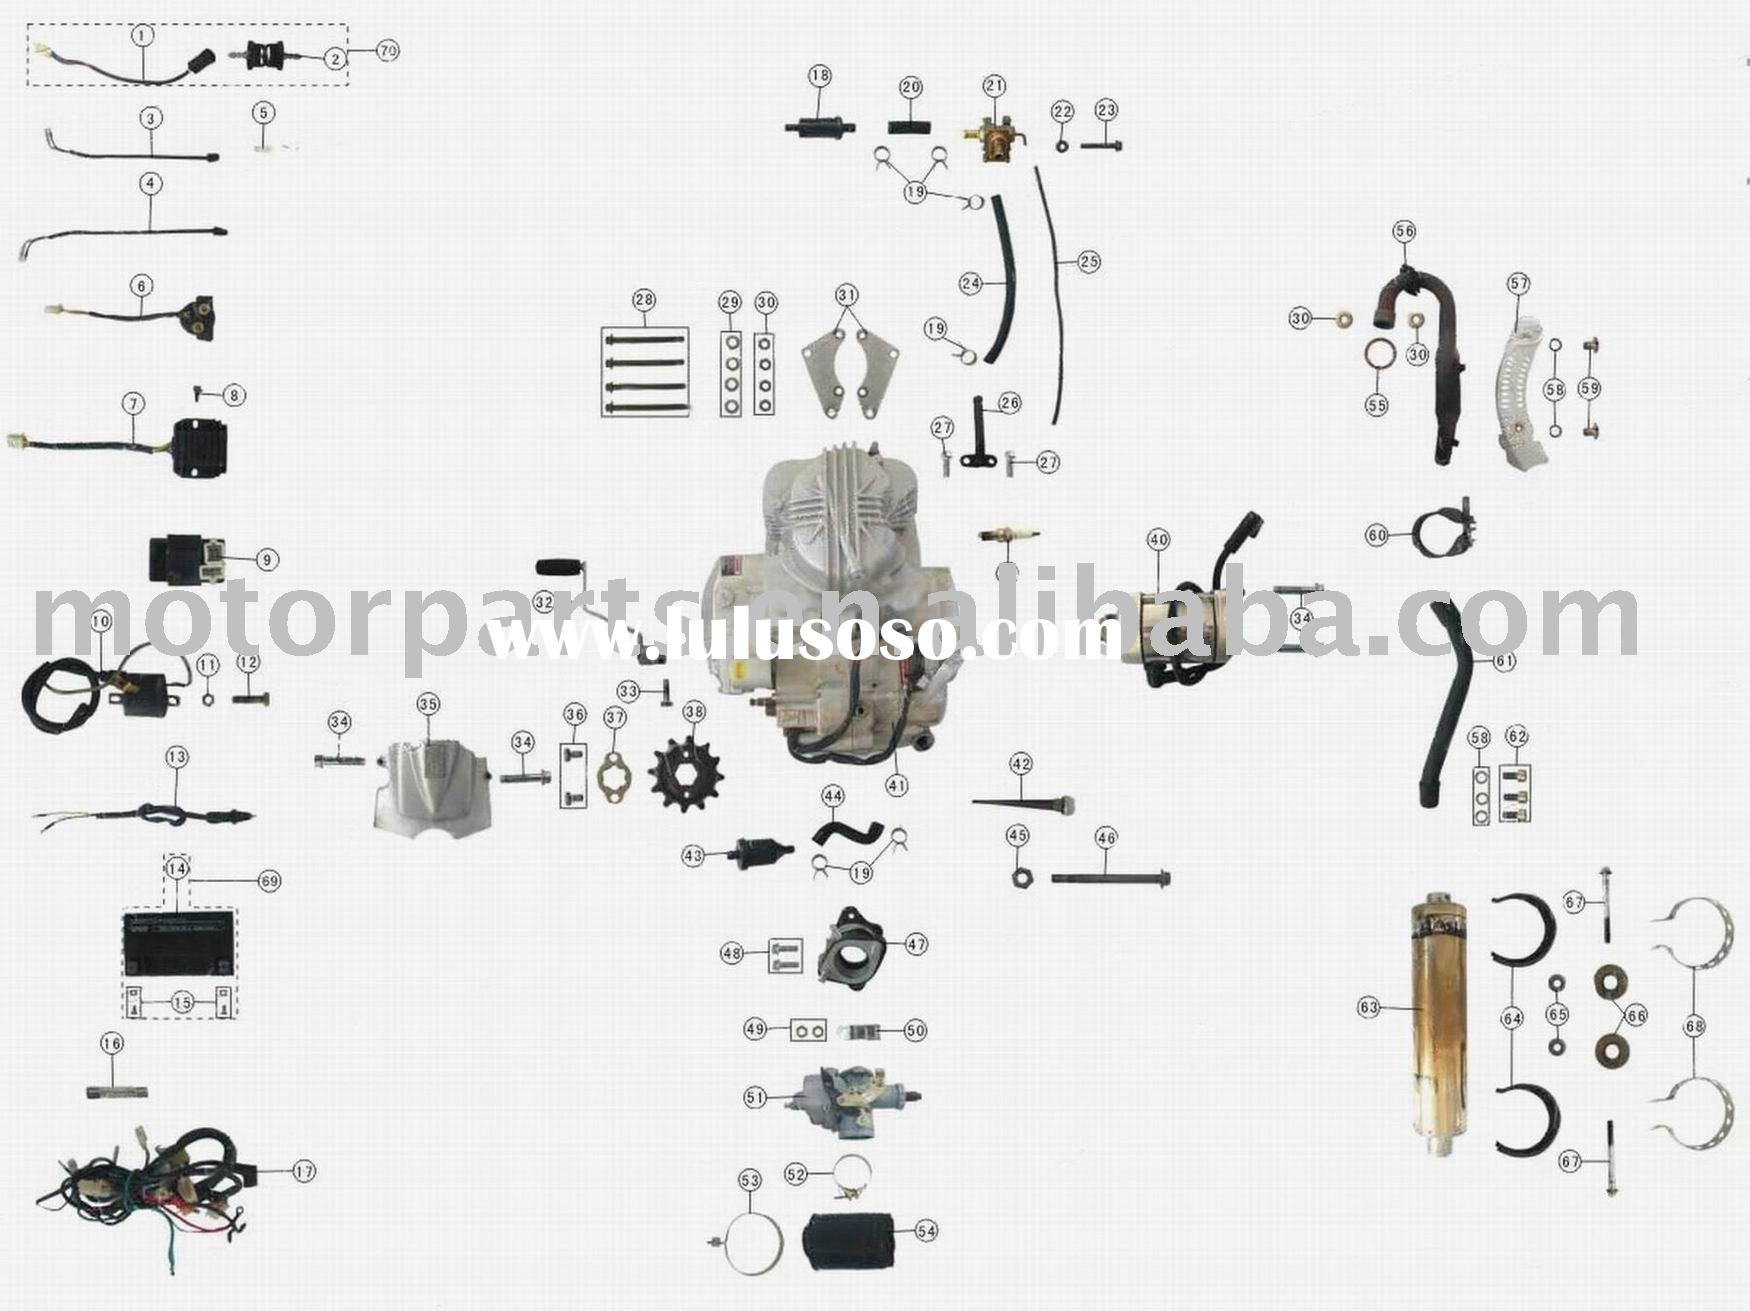 2000 suzuki hayabusa wiring diagram 240v plug lt 125 4 wheeler diagram, lt, free engine image for user manual download